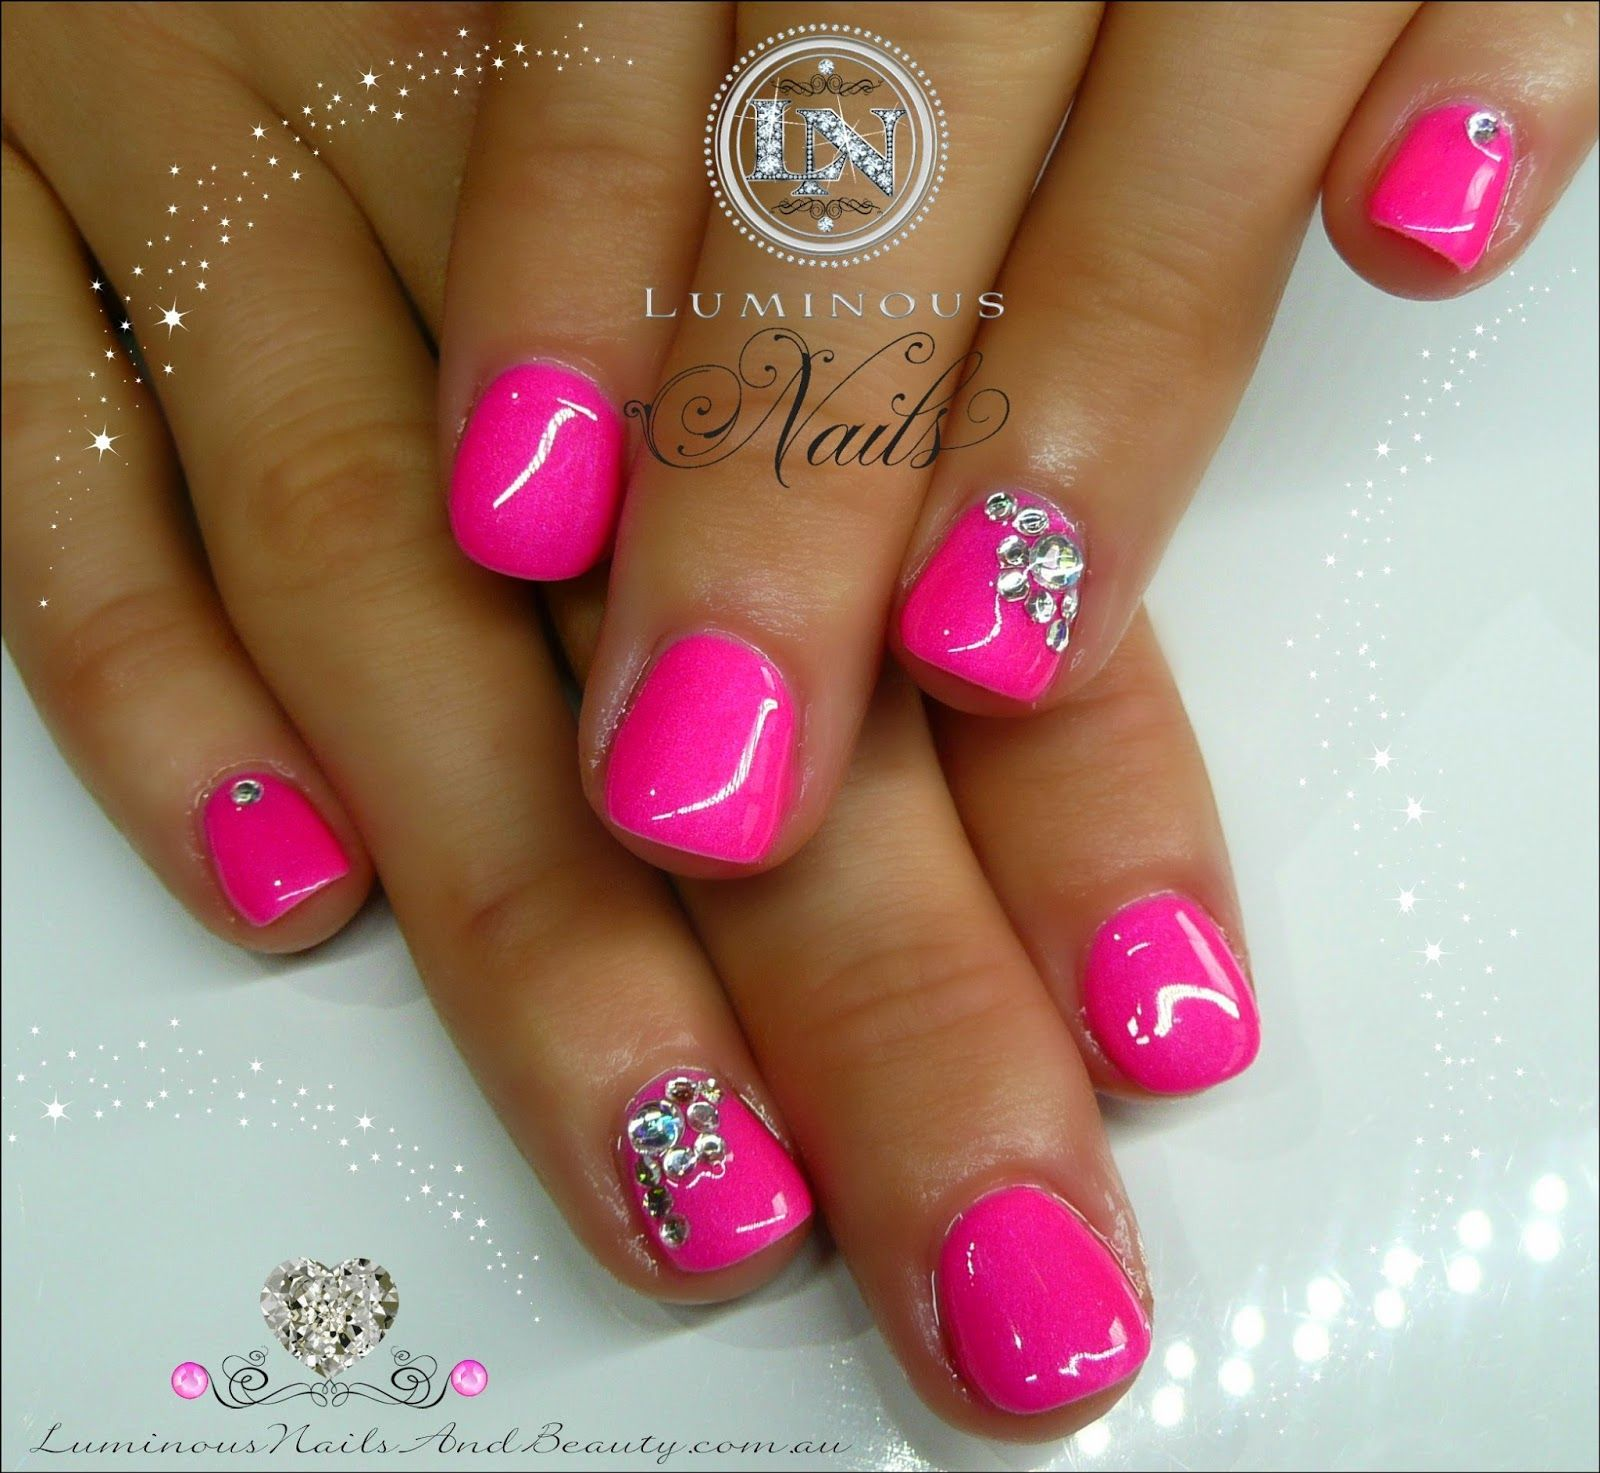 luminous+nails:+cute+hot+pink+gel+over+natural+nails+with+a+little